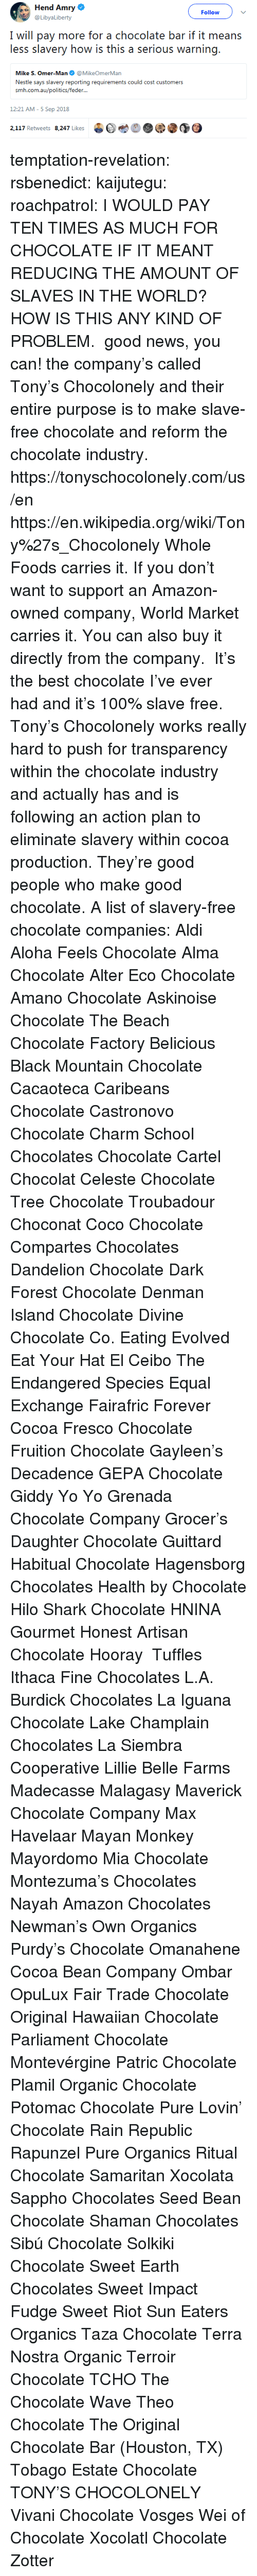 action plan: Hend Amry  @LibyaLiberty  Follow  I will pay more for a chocolate bar if it means  less slavery how is this a serious warning.  Mike S. Omer-Man@MikeOmerMan  Nestle says slavery reporting requirements could cost customers  srmi.exiiauafoliiicxi/icxlkir...  12:21 AM-5 Sep 2018  2,117 Retweets 8.247 Likes  bet  @③ temptation-revelation:  rsbenedict:  kaijutegu:  roachpatrol: I WOULD PAY TEN TIMES AS MUCH FOR CHOCOLATE IF IT MEANT REDUCING THE AMOUNT OF SLAVES IN THE WORLD? HOW IS THIS ANY KIND OF PROBLEM.  good news, you can! the company's called Tony's Chocolonely and their entire purpose is to make slave-free chocolate and reform the chocolate industry. https://tonyschocolonely.com/us/en https://en.wikipedia.org/wiki/Tony%27s_Chocolonely Whole Foods carries it. If you don't want to support an Amazon-owned company, World Market carries it. You can also buy it directly from the company.  It's the best chocolate I've ever had and it's 100% slave free. Tony's Chocolonely works really hard to push for transparency within the chocolate industry and actually has and is following an action plan to eliminate slavery within cocoa production. They're good people who make good chocolate.  A list of slavery-free chocolate companies:  Aldi  Aloha Feels Chocolate  Alma Chocolate  Alter Eco Chocolate  Amano Chocolate  Askinoise Chocolate  The Beach Chocolate Factory  Belicious  Black Mountain Chocolate  Cacaoteca  Caribeans Chocolate  Castronovo Chocolate  Charm School Chocolates  Chocolate Cartel  Chocolat Celeste  Chocolate Tree  Chocolate Troubadour  Choconat  Coco Chocolate  Compartes Chocolates  Dandelion Chocolate  Dark Forest Chocolate  Denman Island Chocolate  Divine Chocolate Co.  Eating Evolved  Eat Your Hat  El Ceibo  The Endangered Species  Equal Exchange  Fairafric  Forever Cocoa  Fresco Chocolate  Fruition Chocolate  Gayleen's Decadence  GEPA Chocolate  Giddy Yo Yo  Grenada Chocolate Company  Grocer's Daughter Chocolate  Guittard  Habitual Chocolate  Hagensborg Chocolates  Health by Chocolate  Hilo Shark Chocolate  HNINA Gourmet  Honest Artisan Chocolate  Hooray  Tuffles Ithaca Fine Chocolates  L.A. Burdick Chocolates  La Iguana Chocolate  Lake Champlain Chocolates  La Siembra Cooperative  Lillie Belle Farms  Madecasse  Malagasy  Maverick Chocolate Company Max Havelaar  Mayan Monkey  Mayordomo  Mia Chocolate  Montezuma's Chocolates  Nayah Amazon Chocolates  Newman's Own Organics  Purdy's Chocolate  Omanahene Cocoa Bean Company  Ombar  OpuLux Fair Trade Chocolate  Original Hawaiian Chocolate  Parliament Chocolate  Montevérgine  Patric Chocolate  Plamil Organic Chocolate  Potomac Chocolate  Pure Lovin' Chocolate  Rain Republic  Rapunzel Pure Organics  Ritual Chocolate  Samaritan Xocolata  Sappho Chocolates  Seed  Bean Chocolate  Shaman Chocolates  Sibú Chocolate  Solkiki Chocolate  Sweet Earth Chocolates  Sweet Impact Fudge  Sweet Riot  Sun Eaters Organics  Taza Chocolate  Terra Nostra Organic  Terroir Chocolate  TCHO  The Chocolate Wave  Theo Chocolate  The Original Chocolate Bar (Houston, TX)  Tobago Estate Chocolate  TONY'S CHOCOLONELY  Vivani Chocolate  Vosges  Wei of Chocolate  Xocolatl Chocolate Zotter